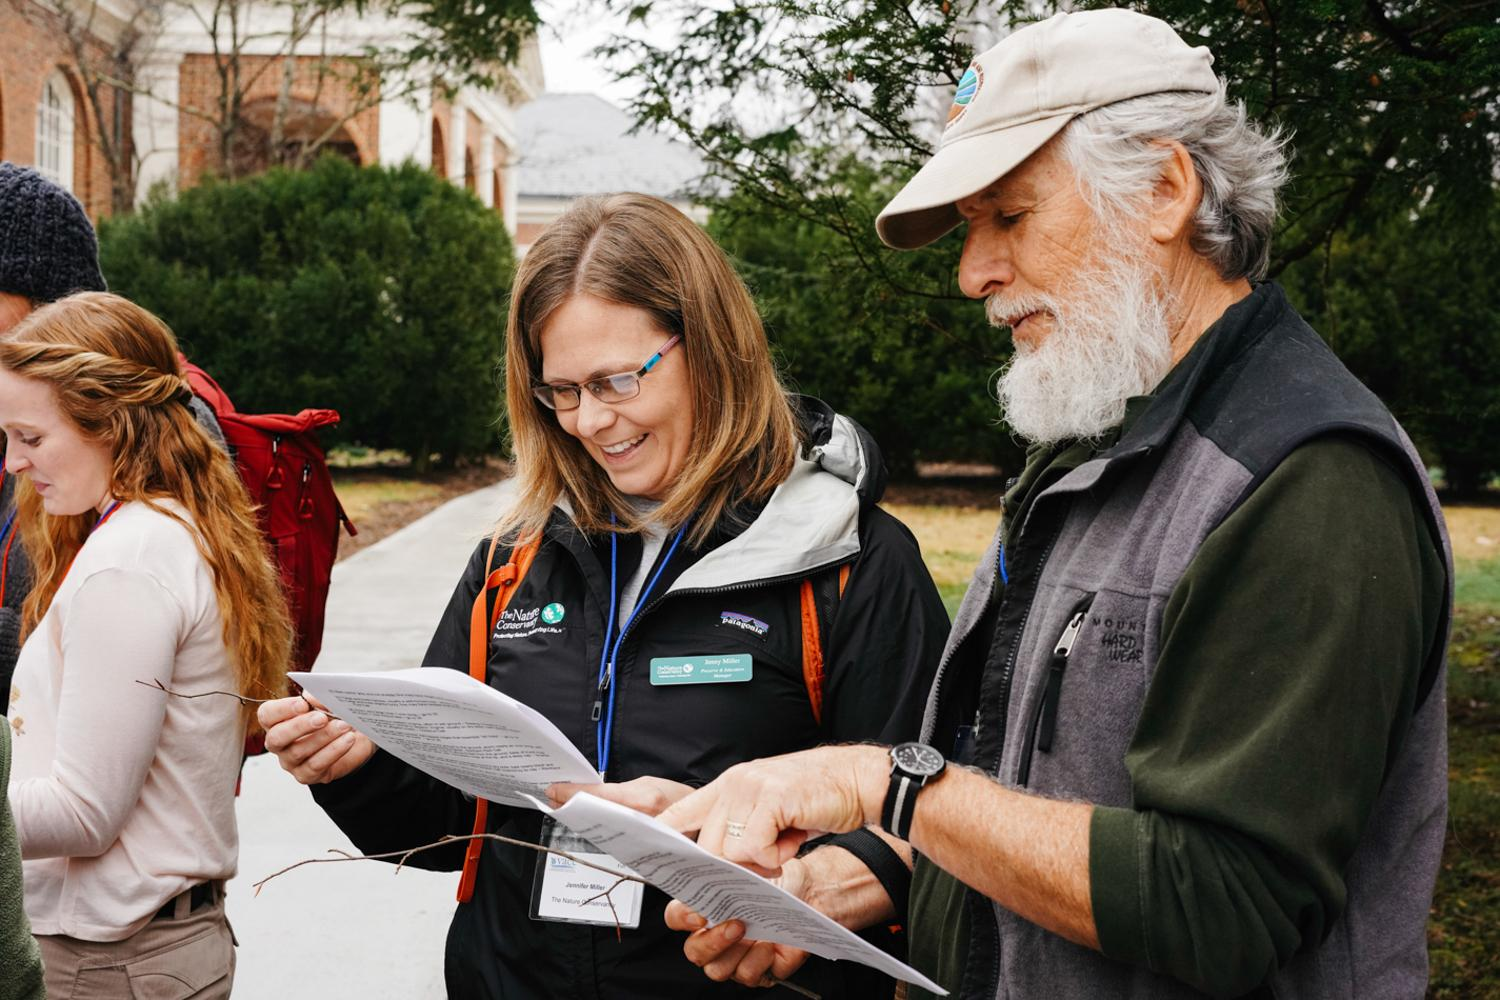 Two wildlife and environmental enthusiasts and members of the VAEE read from an information packet provided by the organization, 2020.